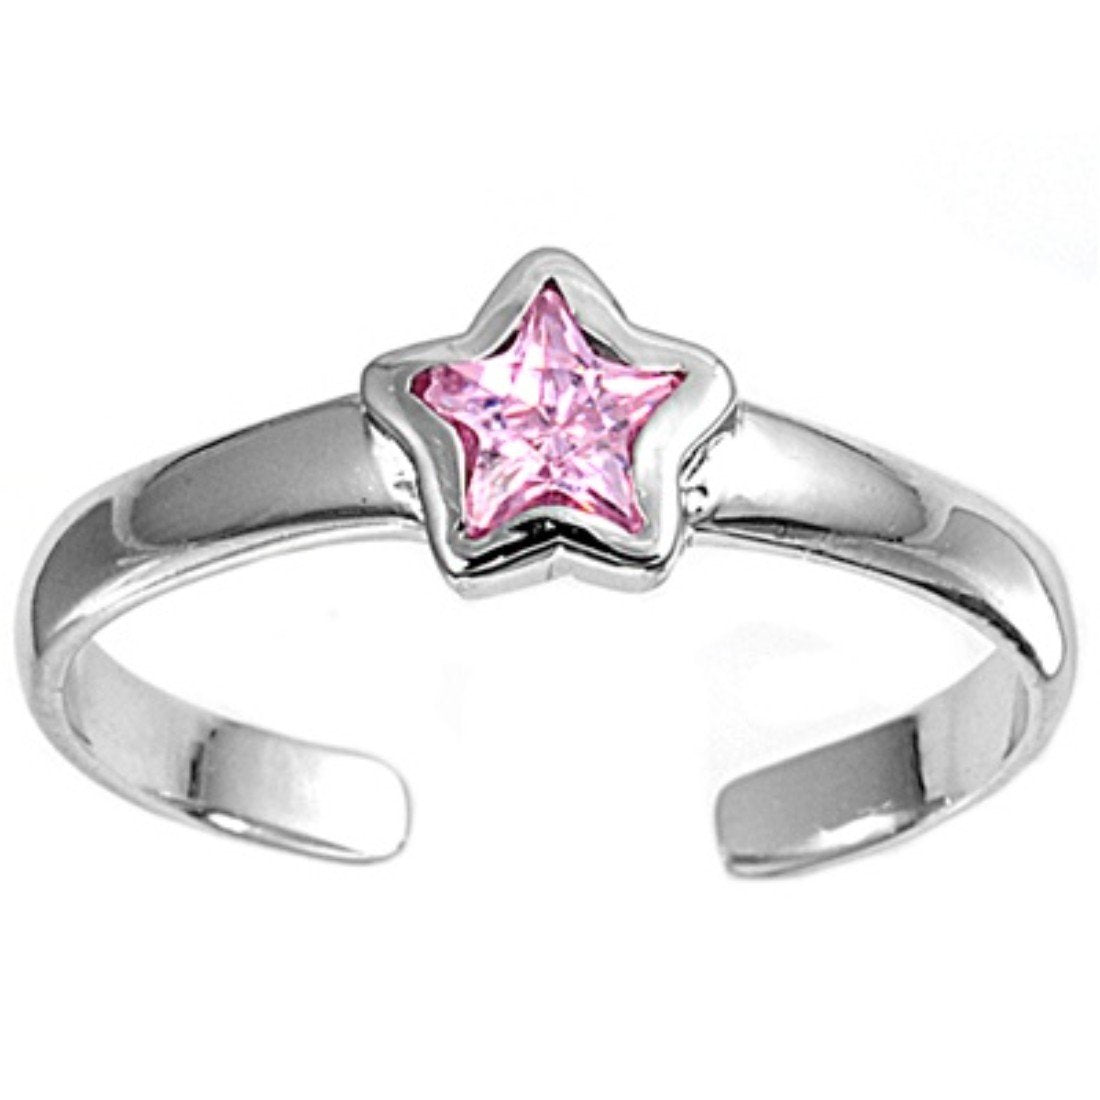 Silver Toe Ring Star Simulated Cubic Zirconia 925 Sterling Silver (2mm)